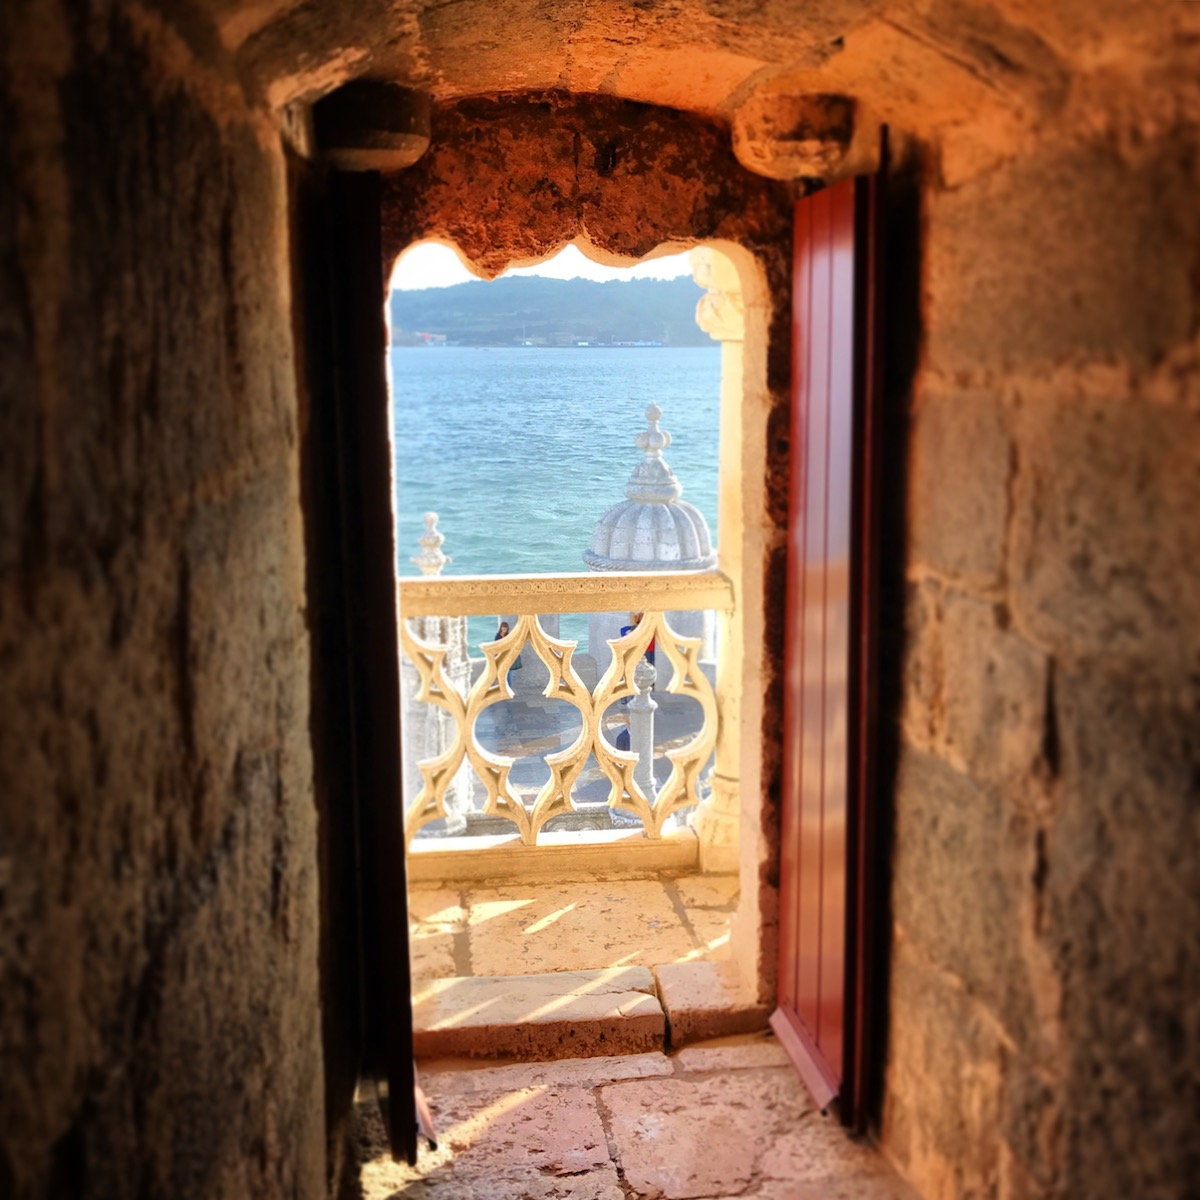 Through a door in Belém Tower, looking out to the harbor soaked in the late afternoon sun.